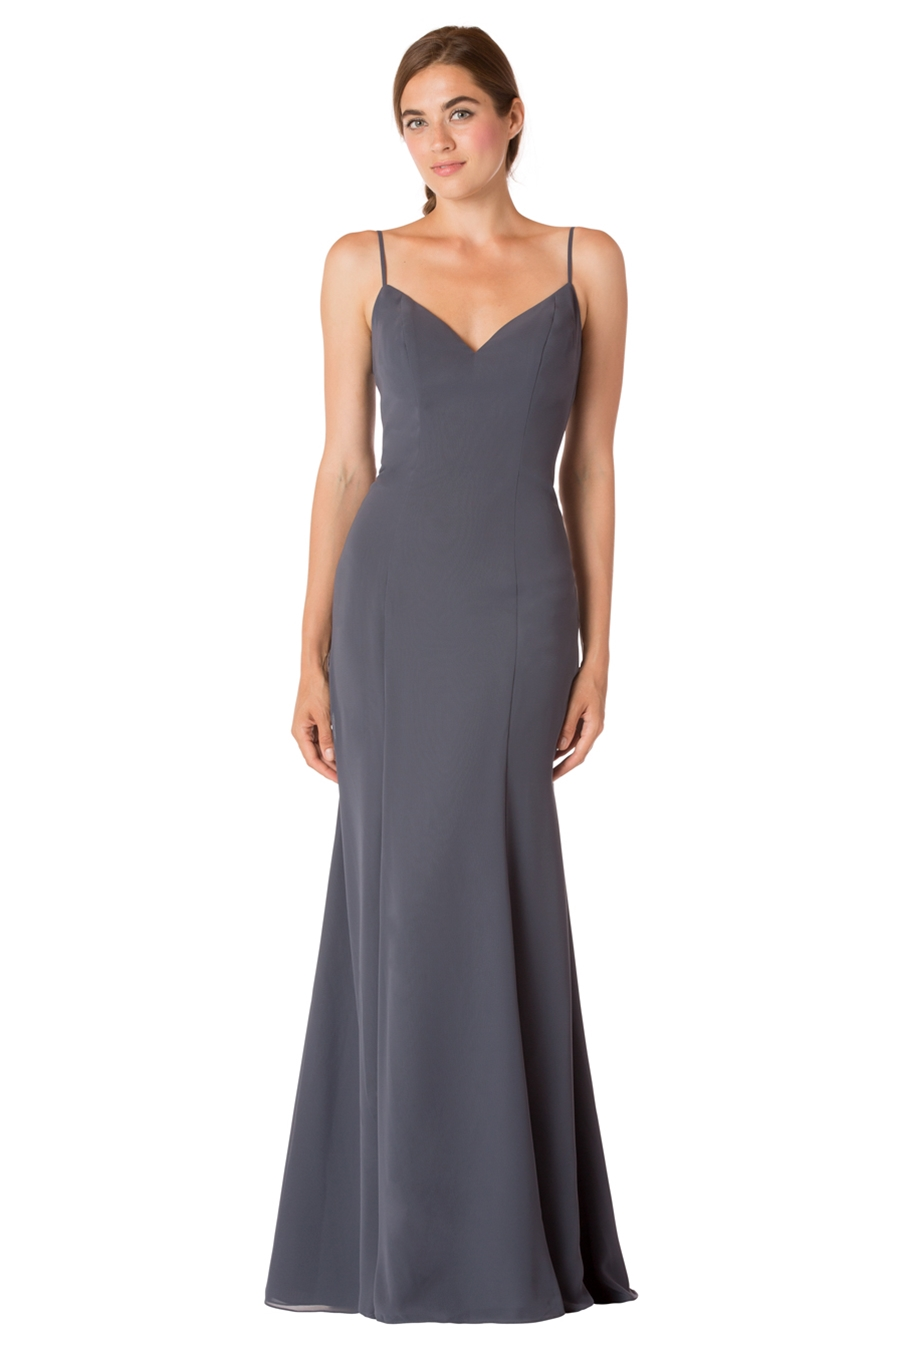 Bari jay bridesmaid dress style 1728 house of brides select color ombrellifo Images